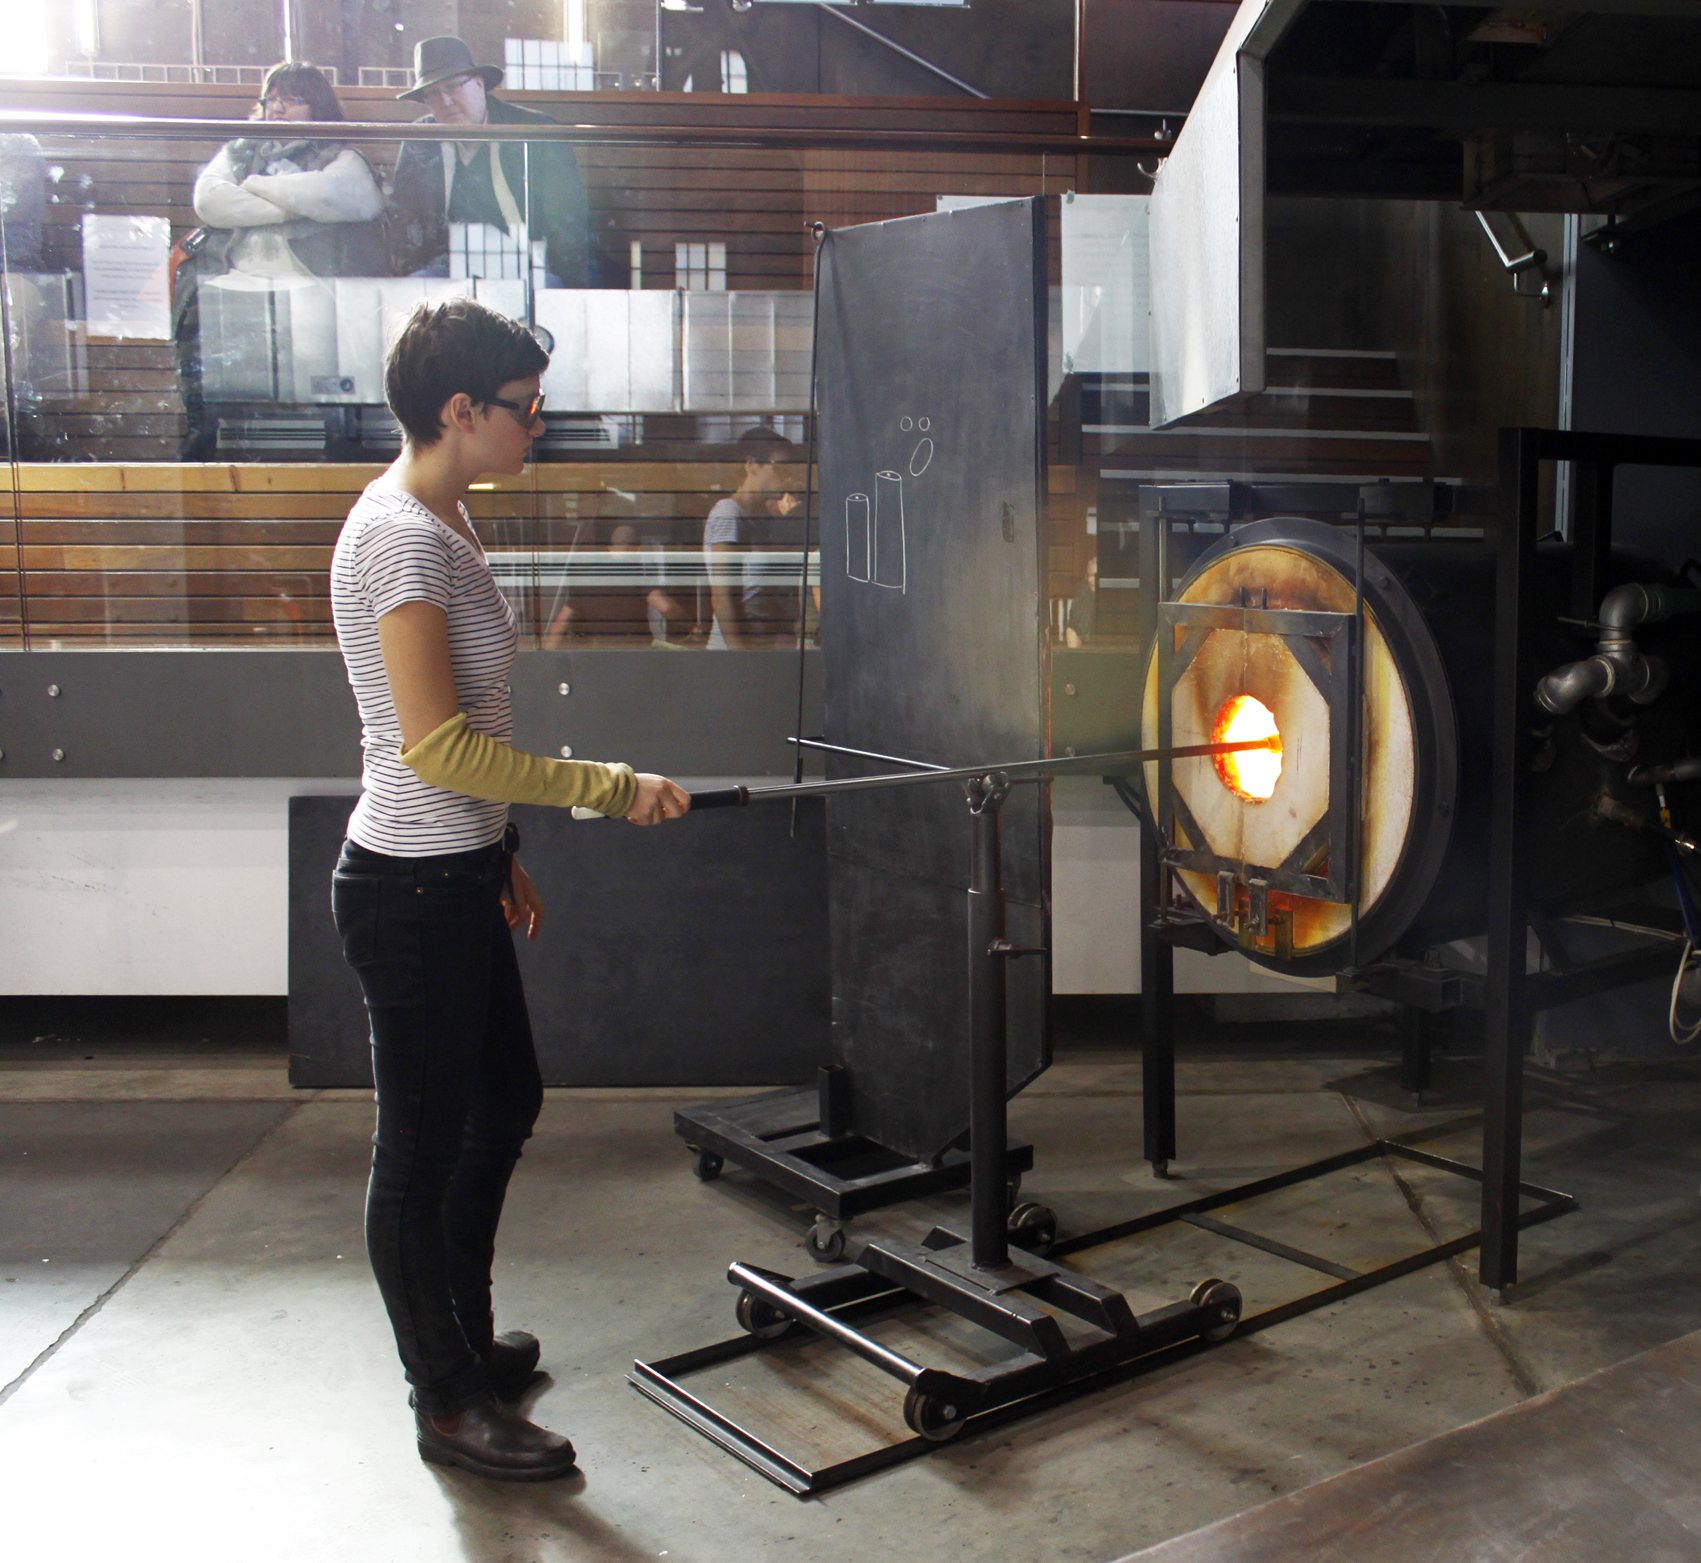 This is the glory hole the glass is kept hot at 1200 degrees celsius.